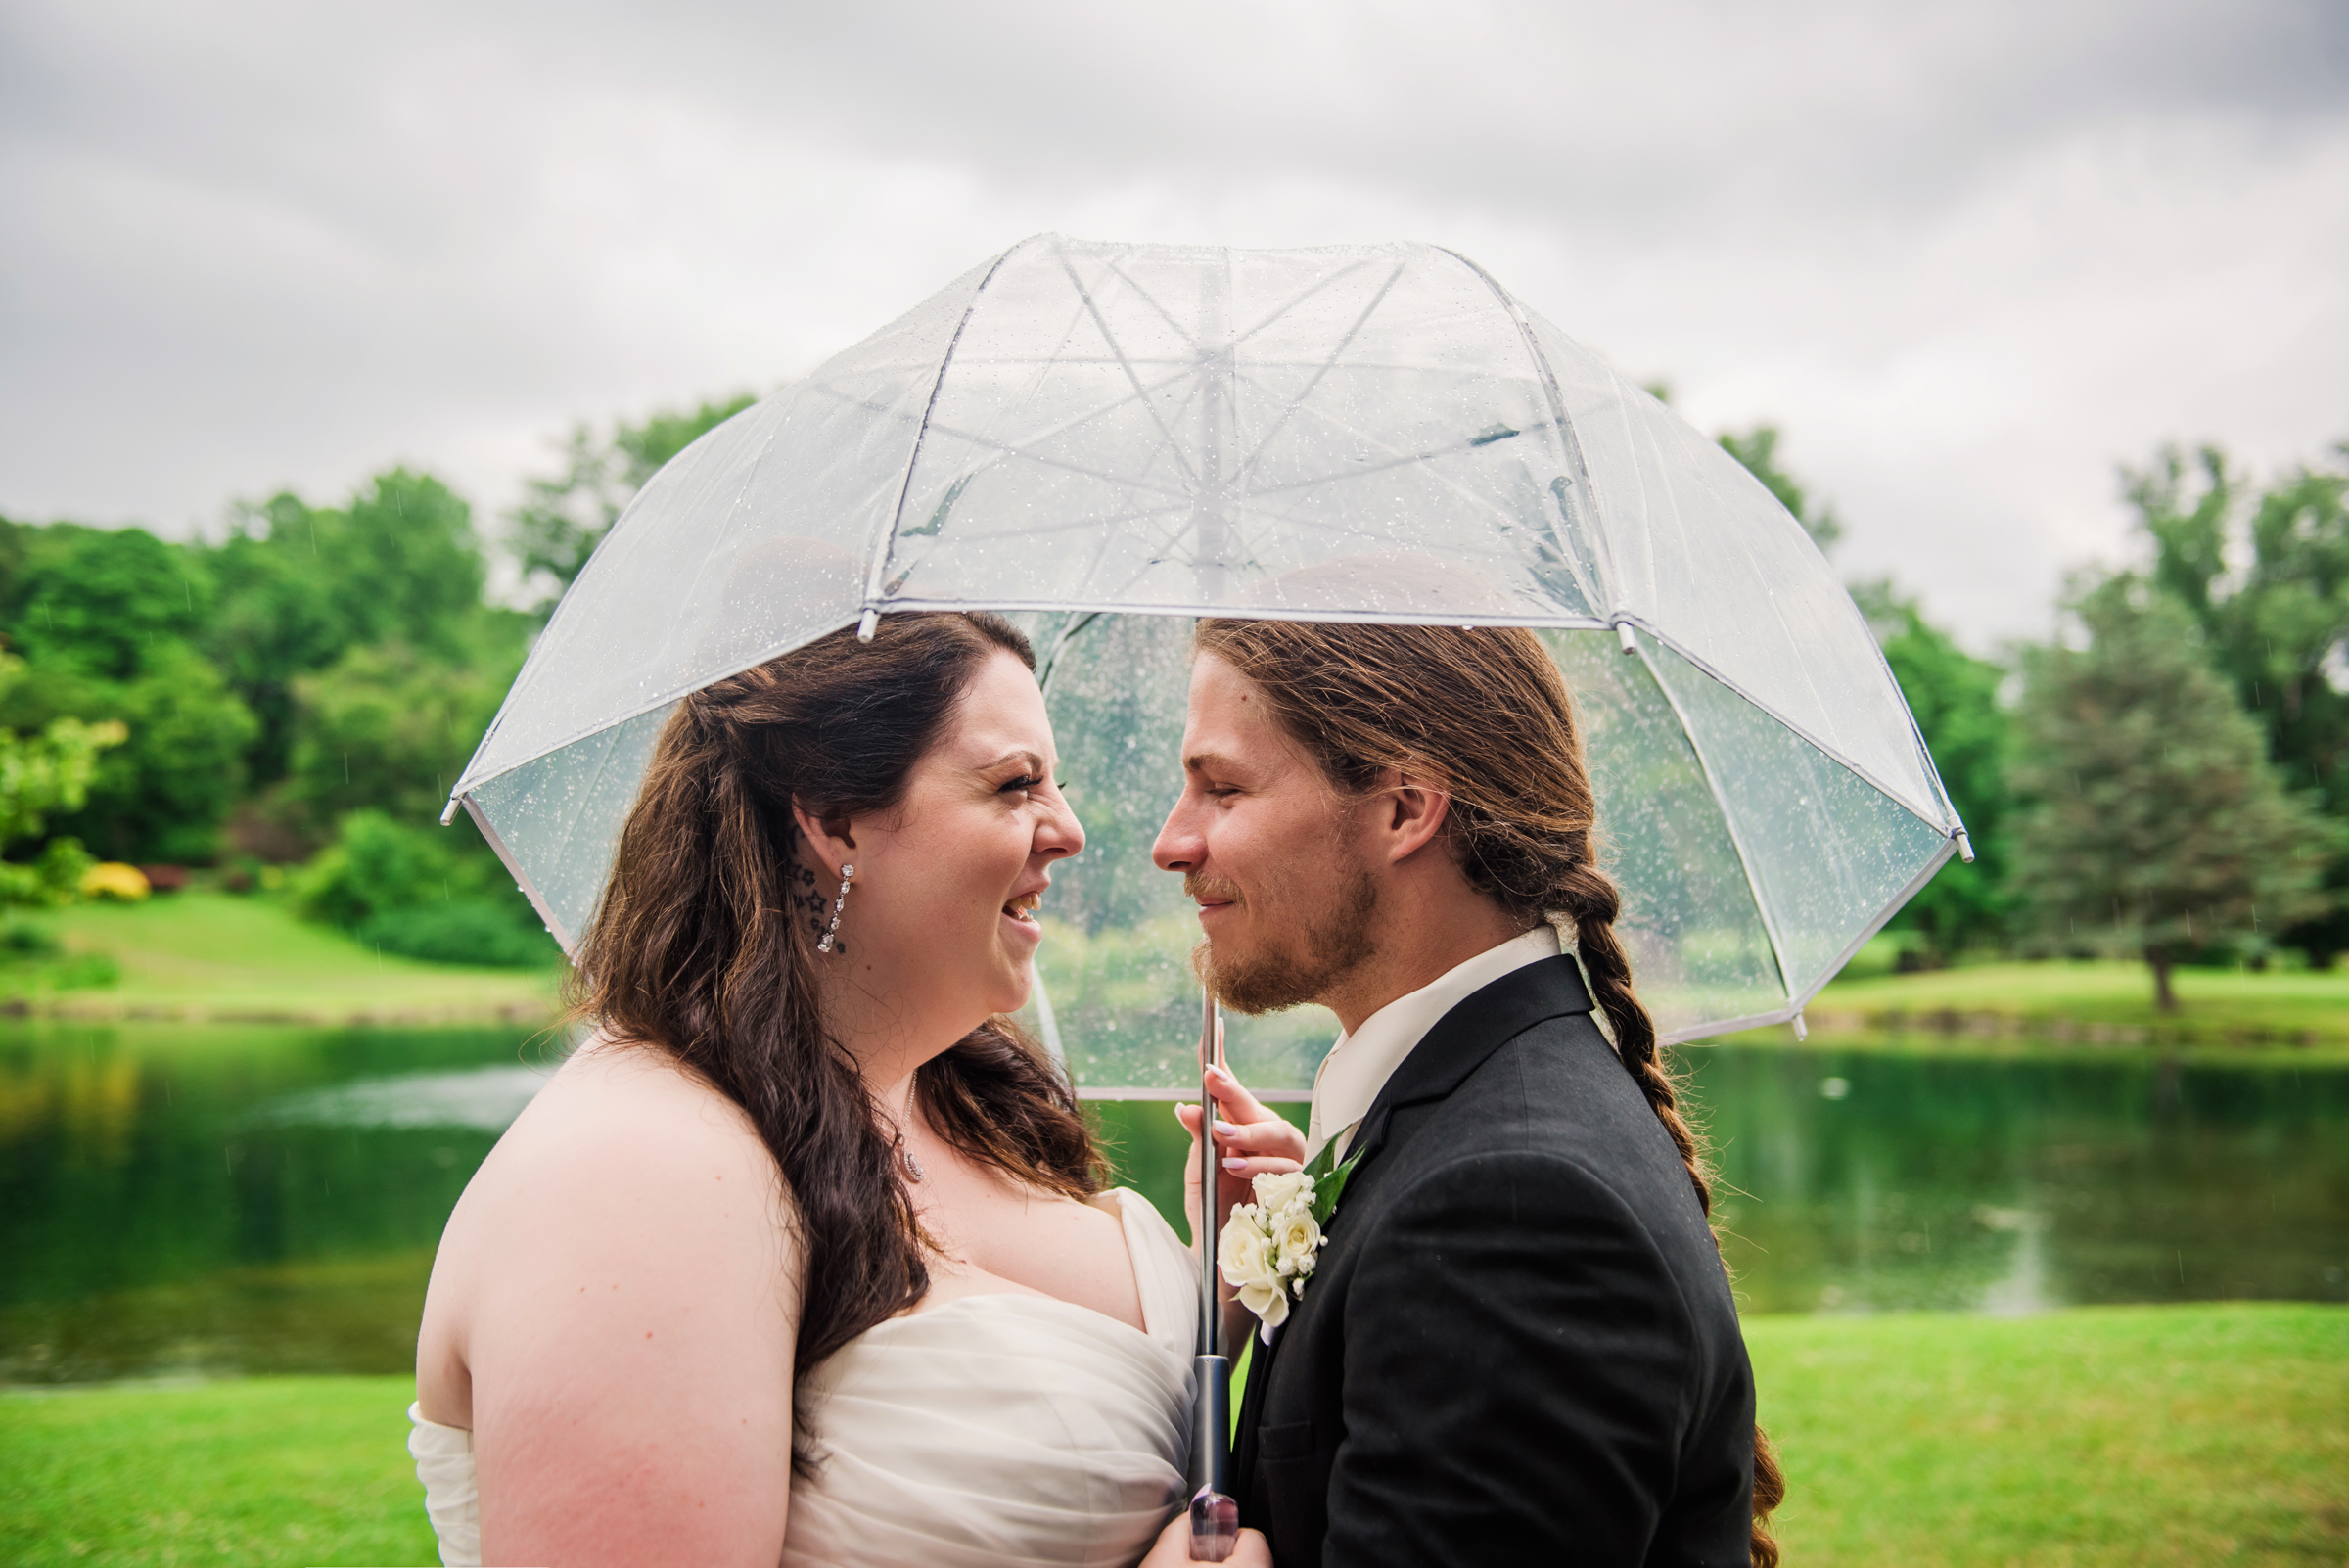 JILL_STUDIO_Wedding_JILL_STUDIO_Rochester_NY_Photographer_7-DSC_4044.jpg